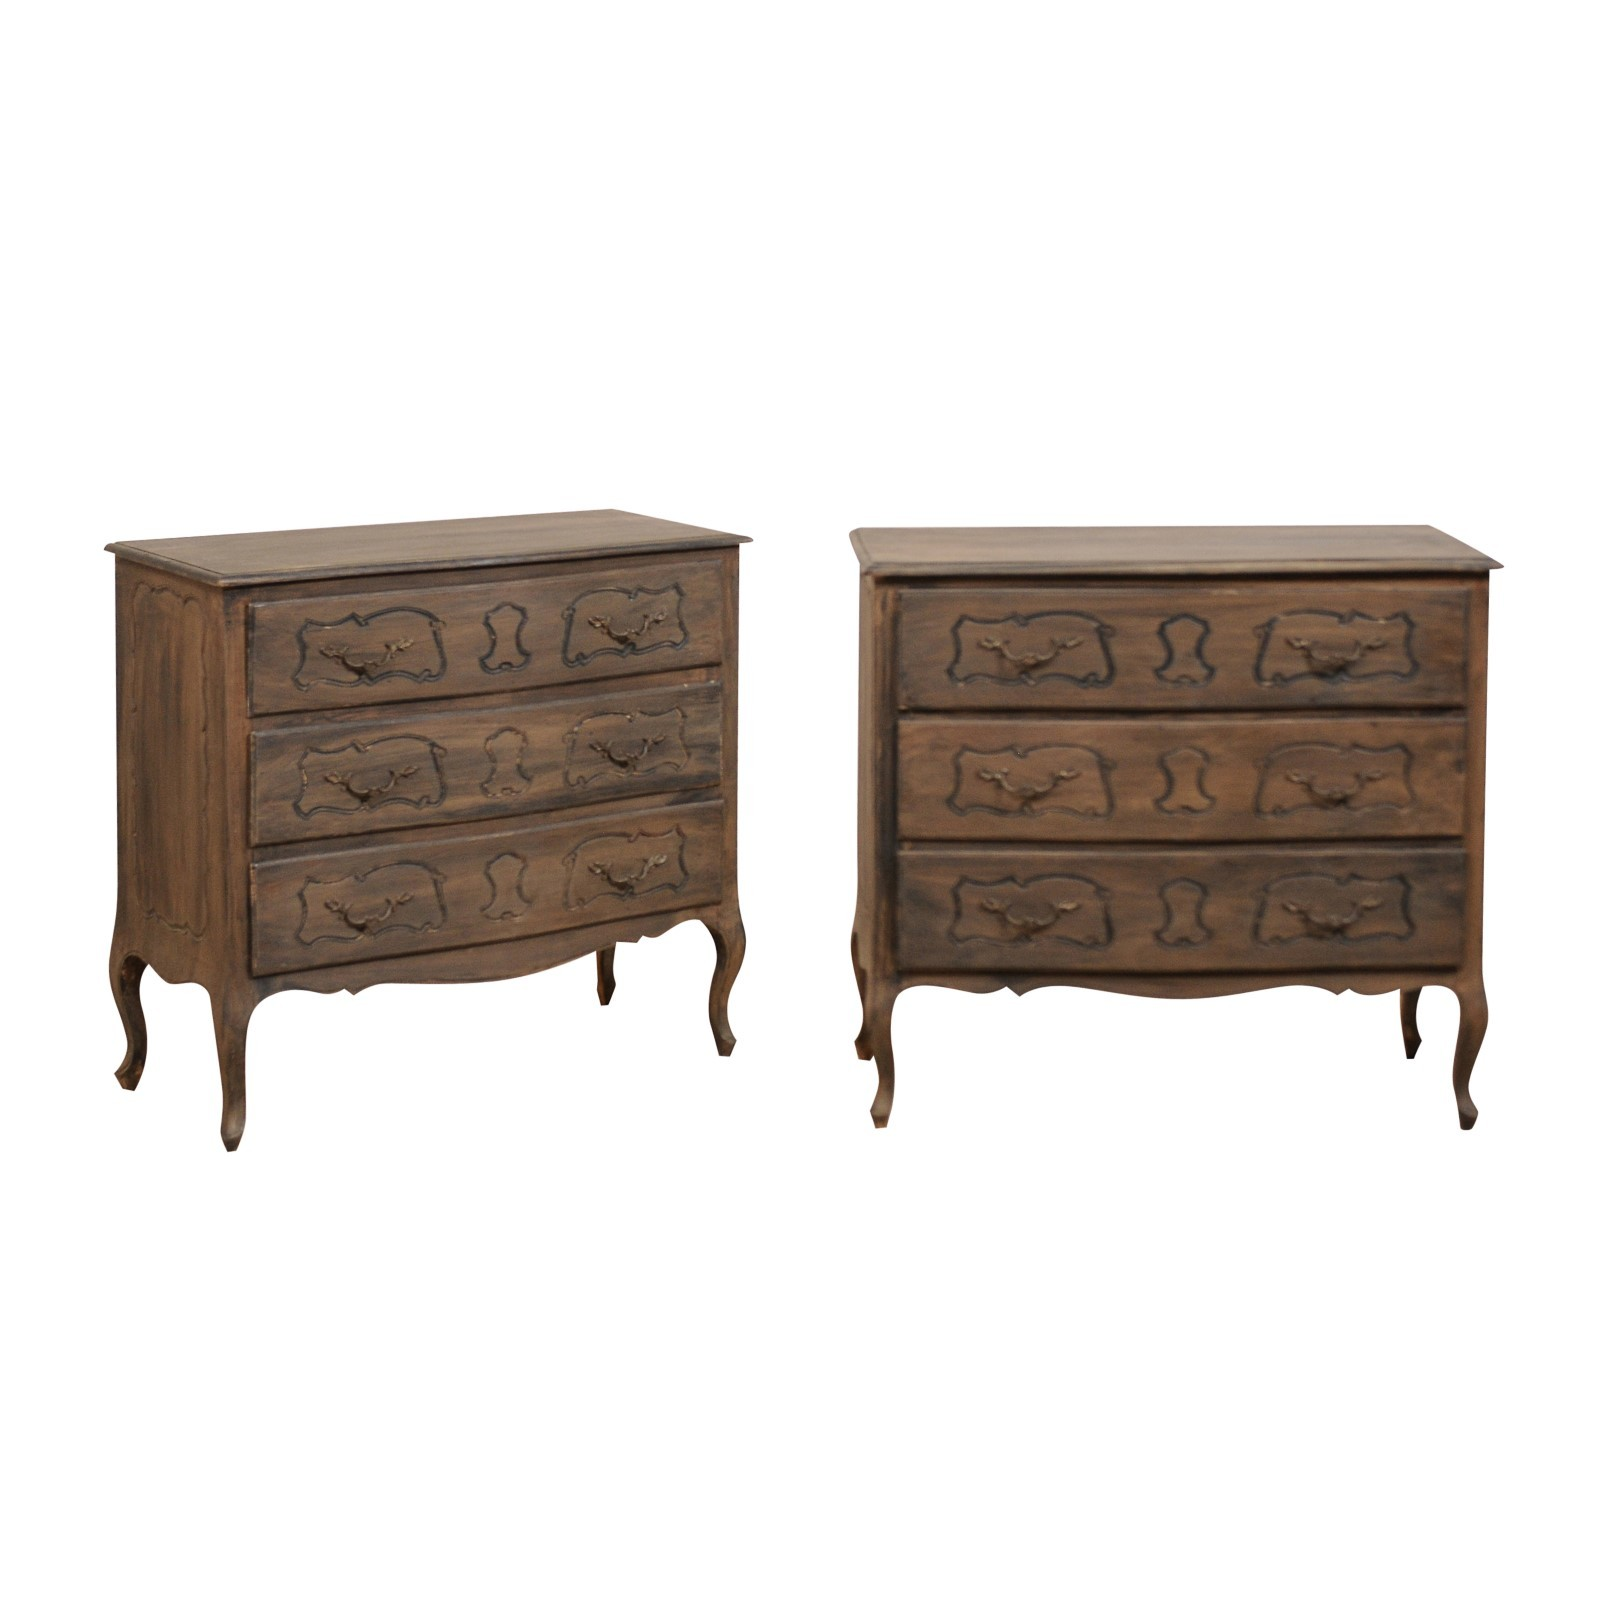 Pair Chest of Drawers, Mid 20th Century